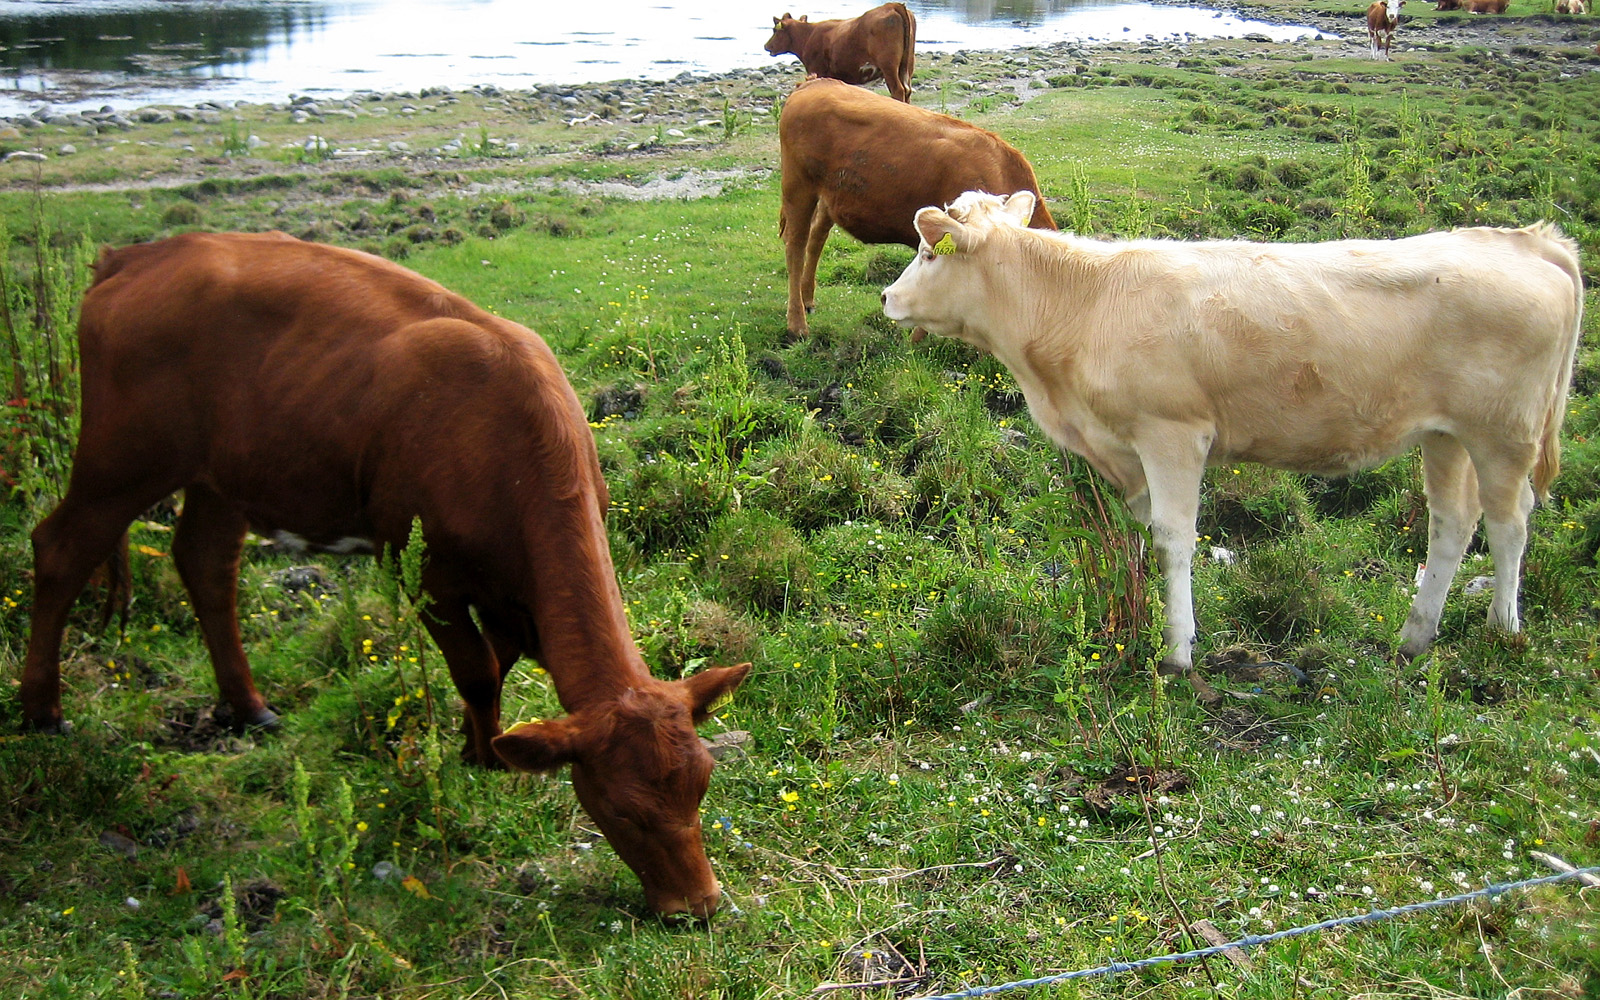 Livestock VS Wildlife The Impact of Cattle Grazing and Animal Agriculture